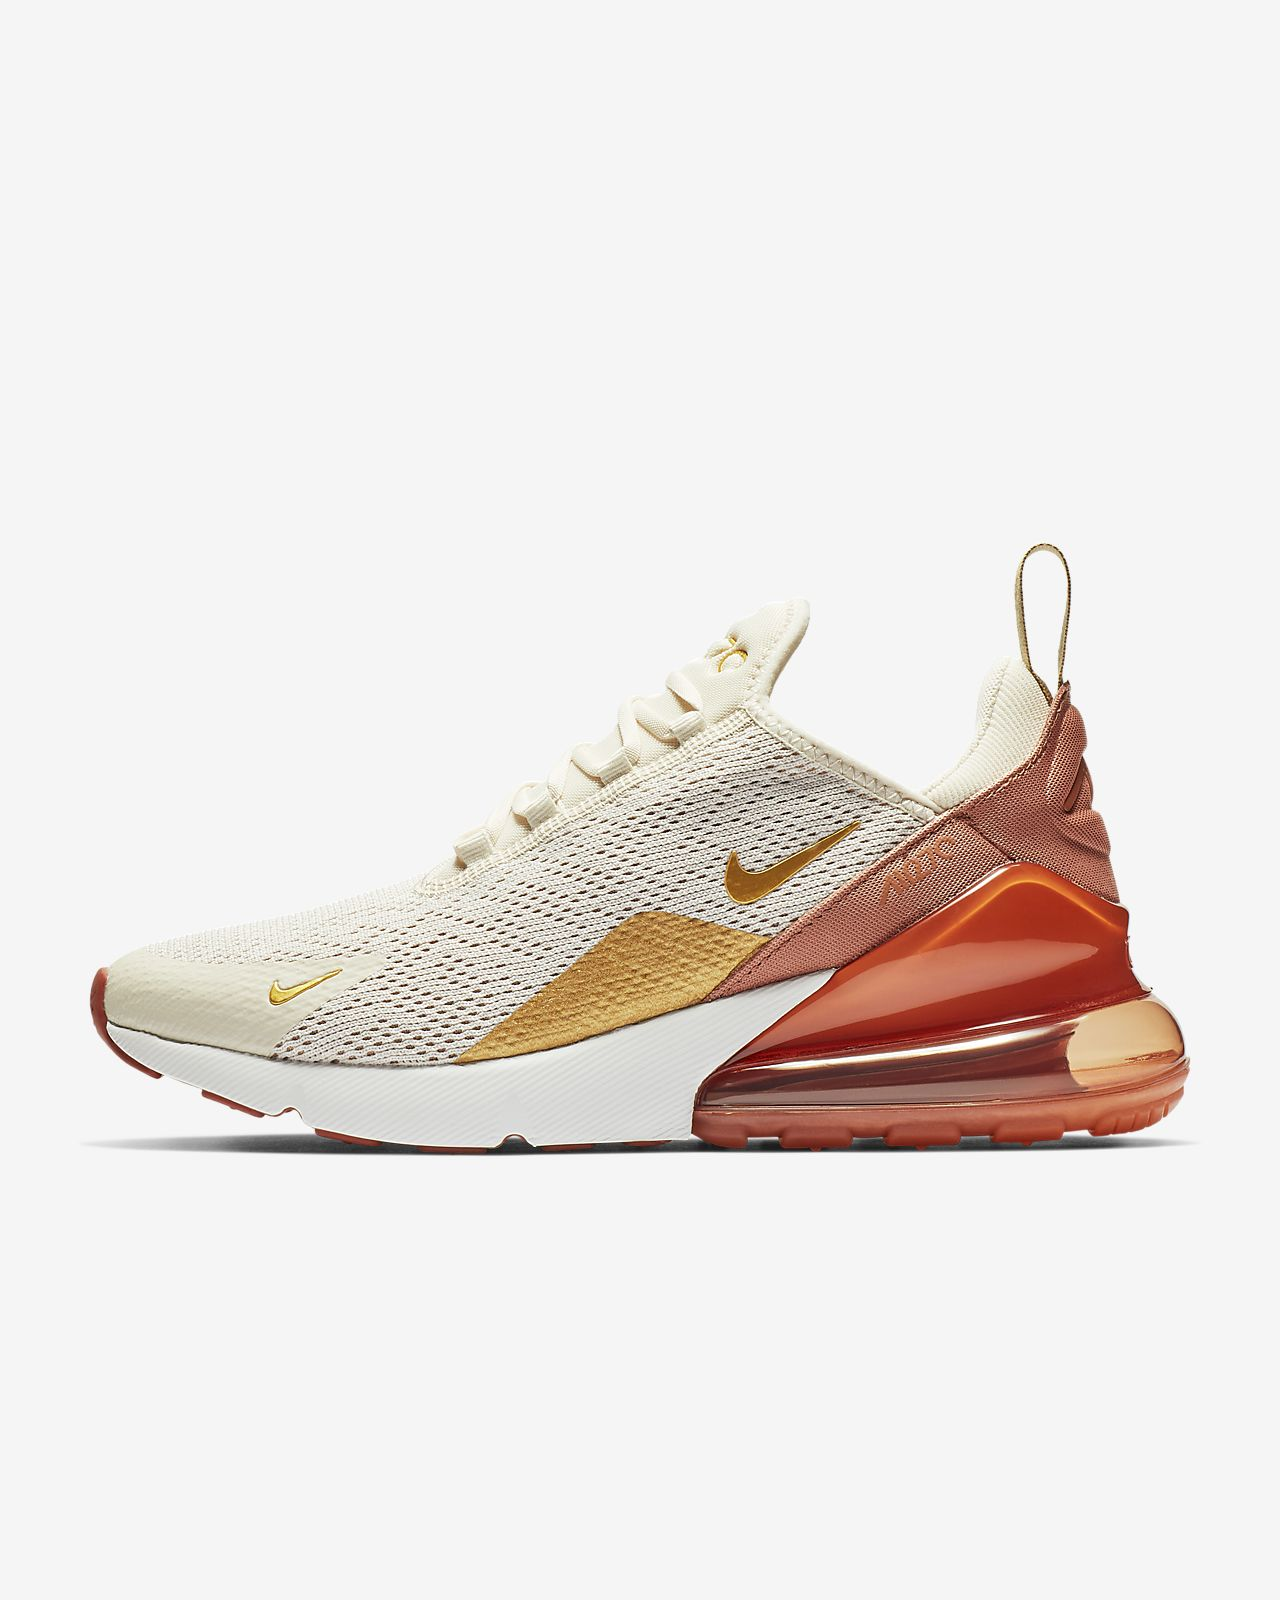 1bad7d59620a Nike Air Max 270 Women s Shoe. Nike.com